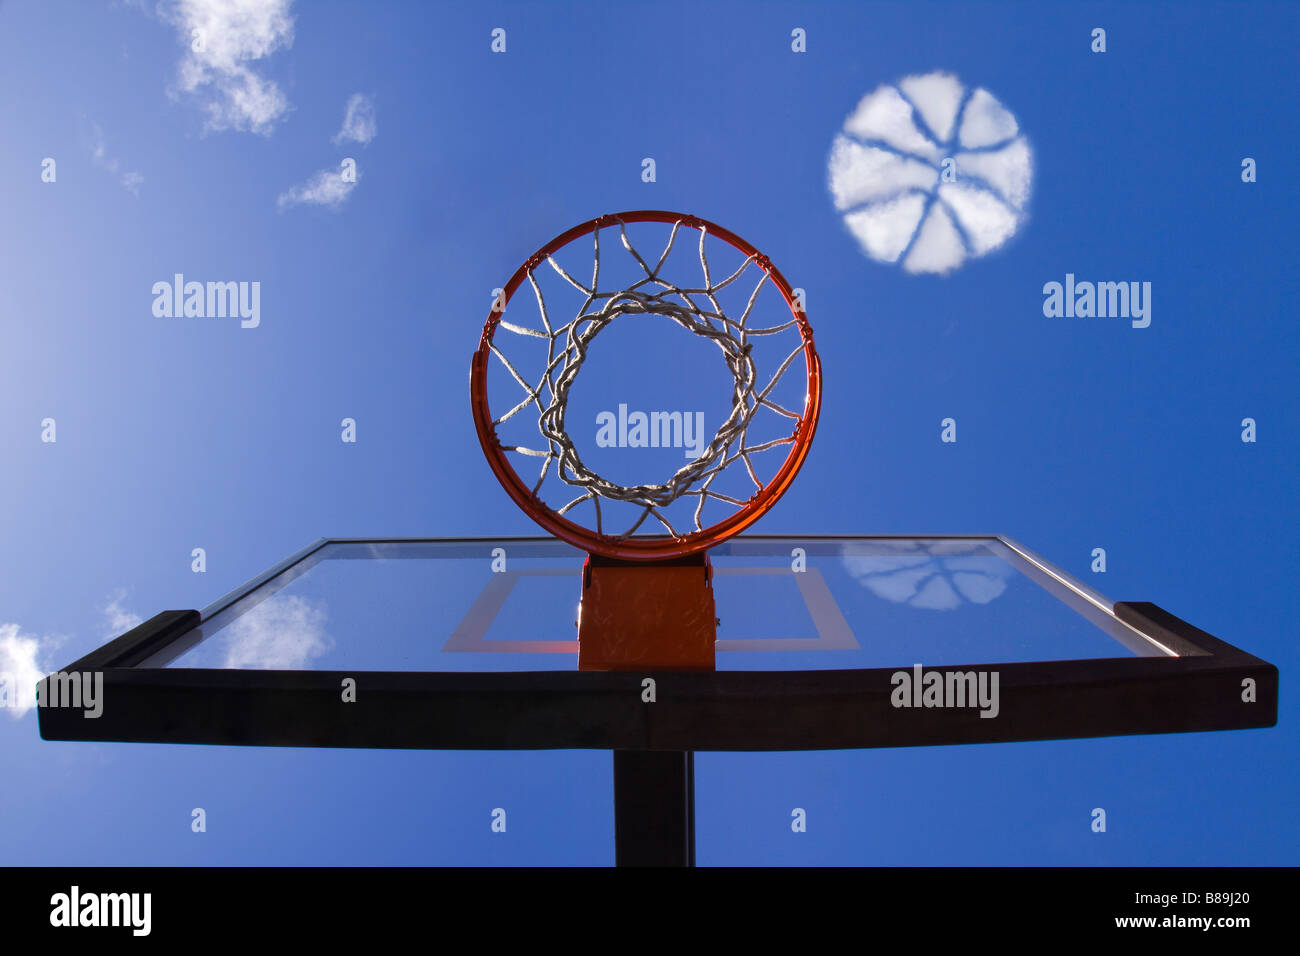 Cloud in the sky in the shape of a basketball approaching a basketball hoop as if it is about to go into the net - Stock Image